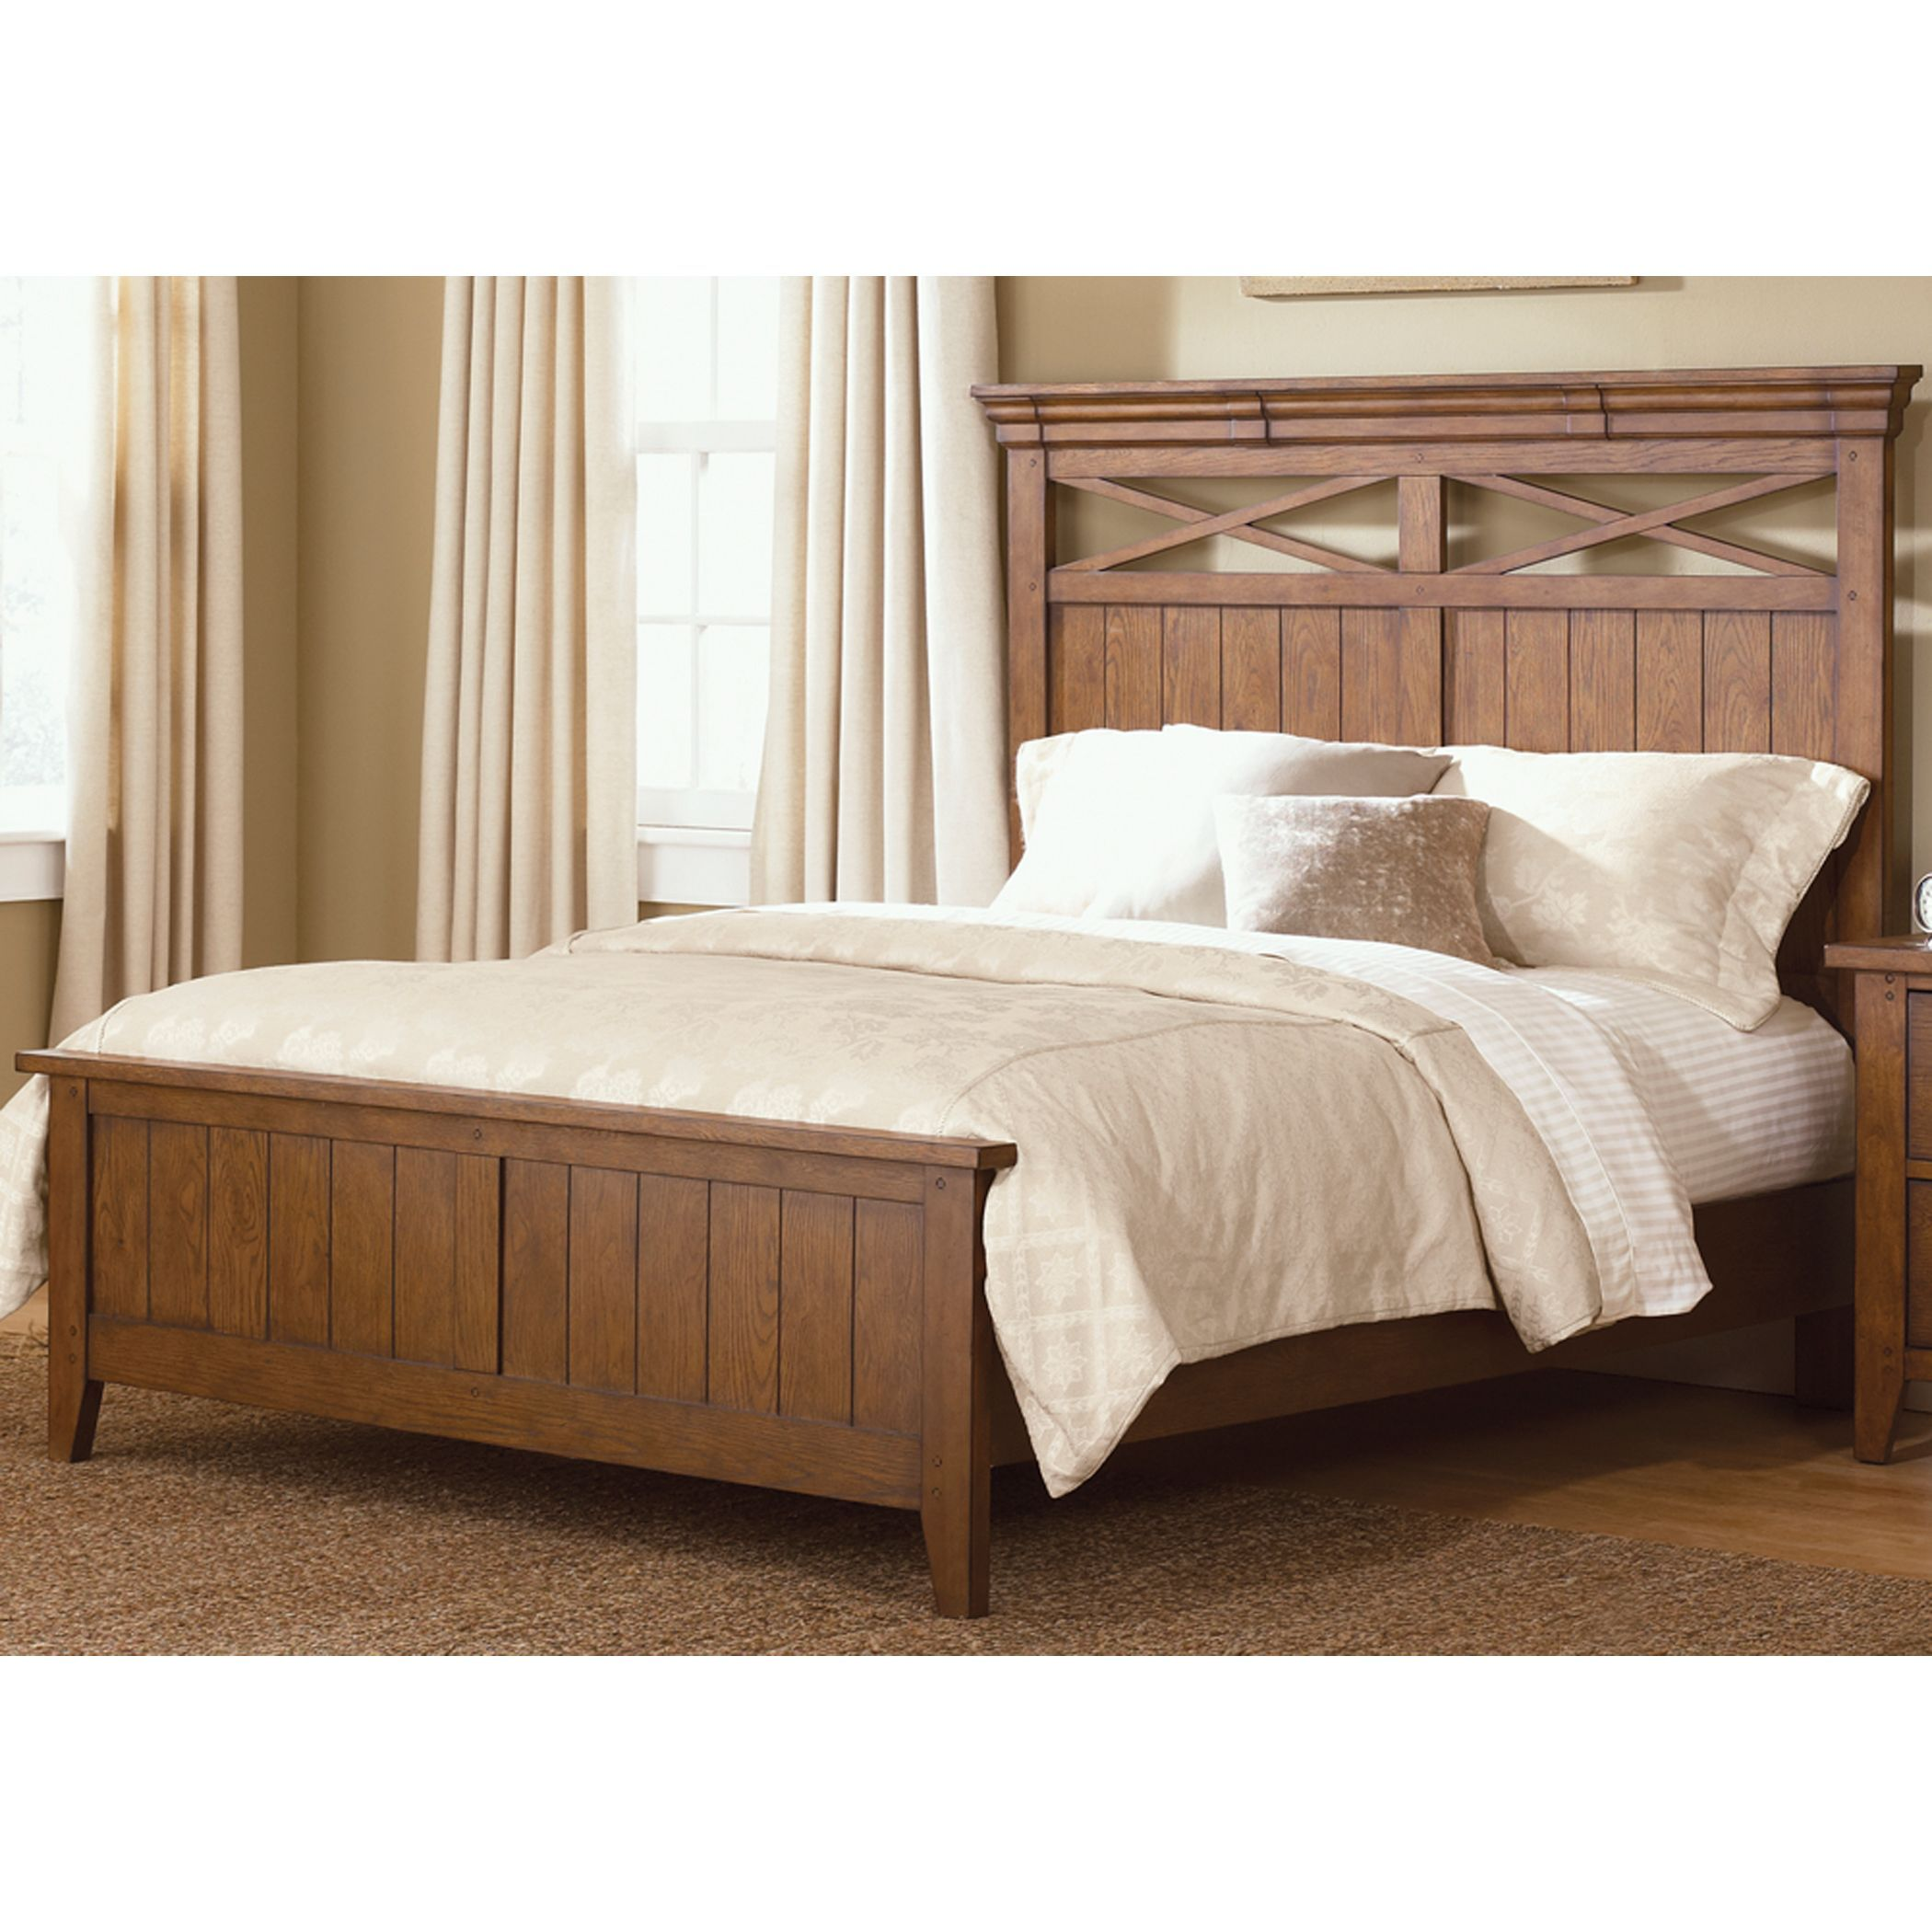 The heathstone oak bedroom suite offers french and english dovetail